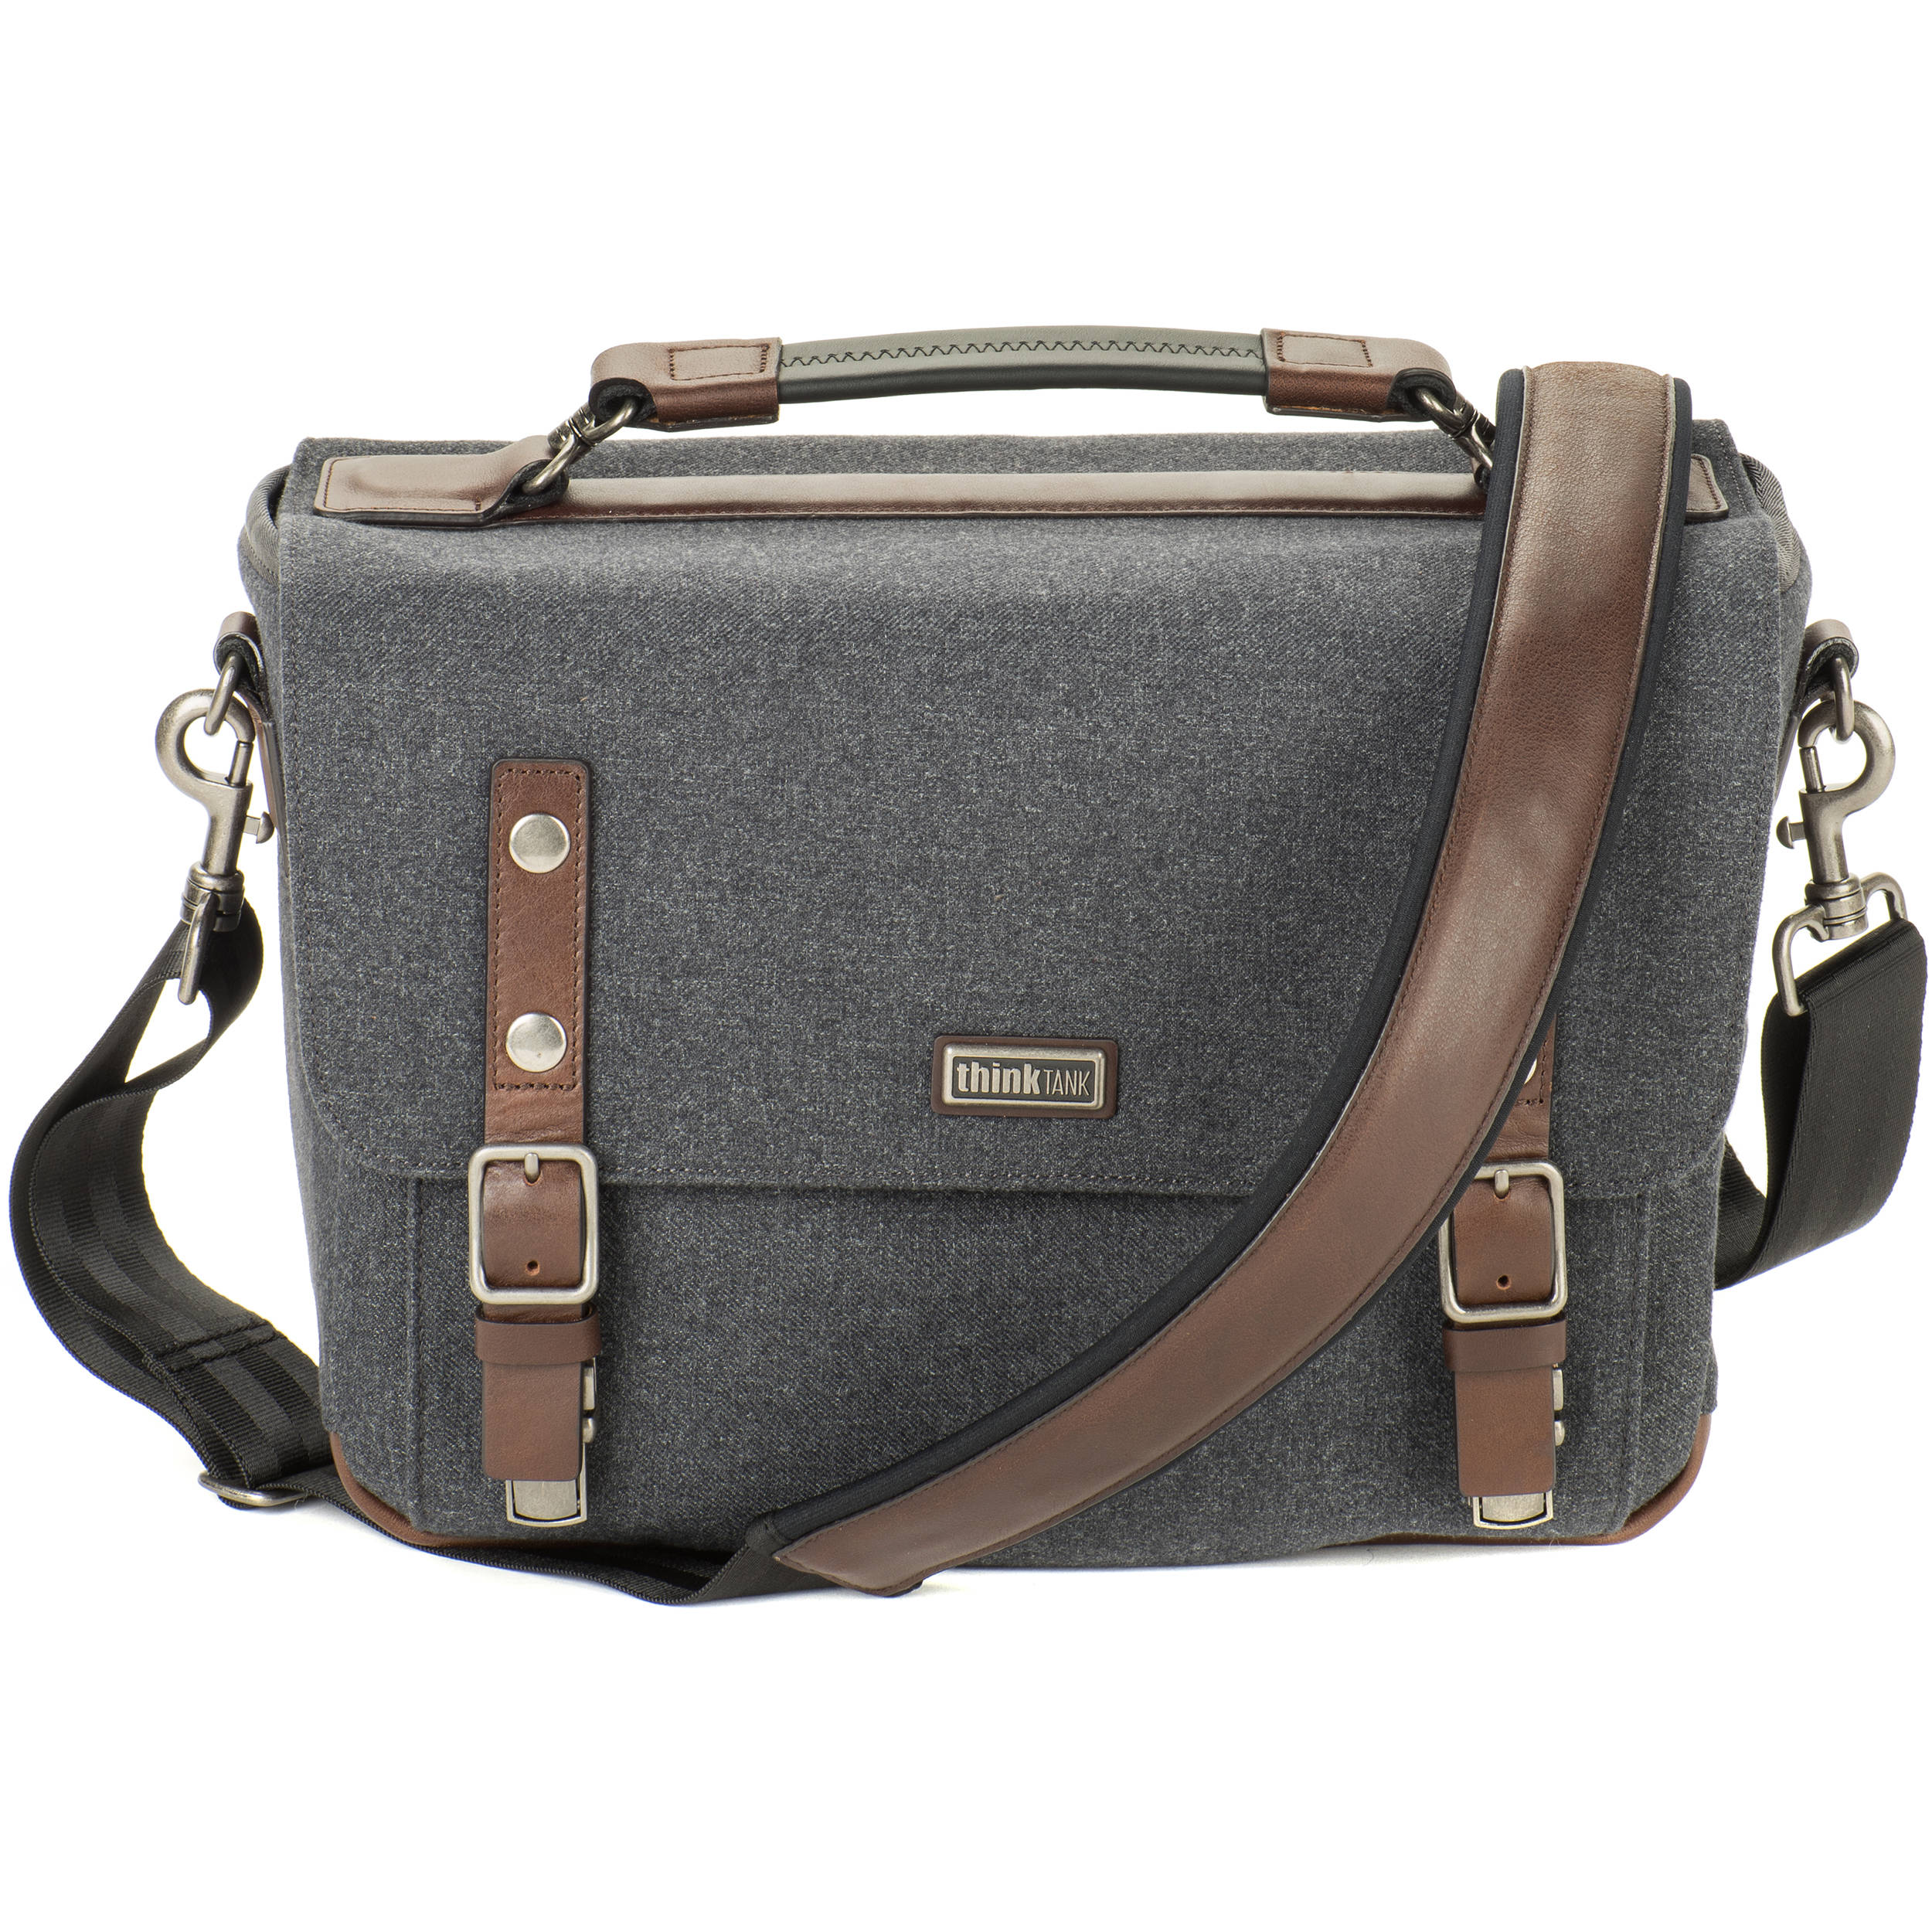 Think Tank Photo Signature 10 Camera Shoulder Bag Slate Gray